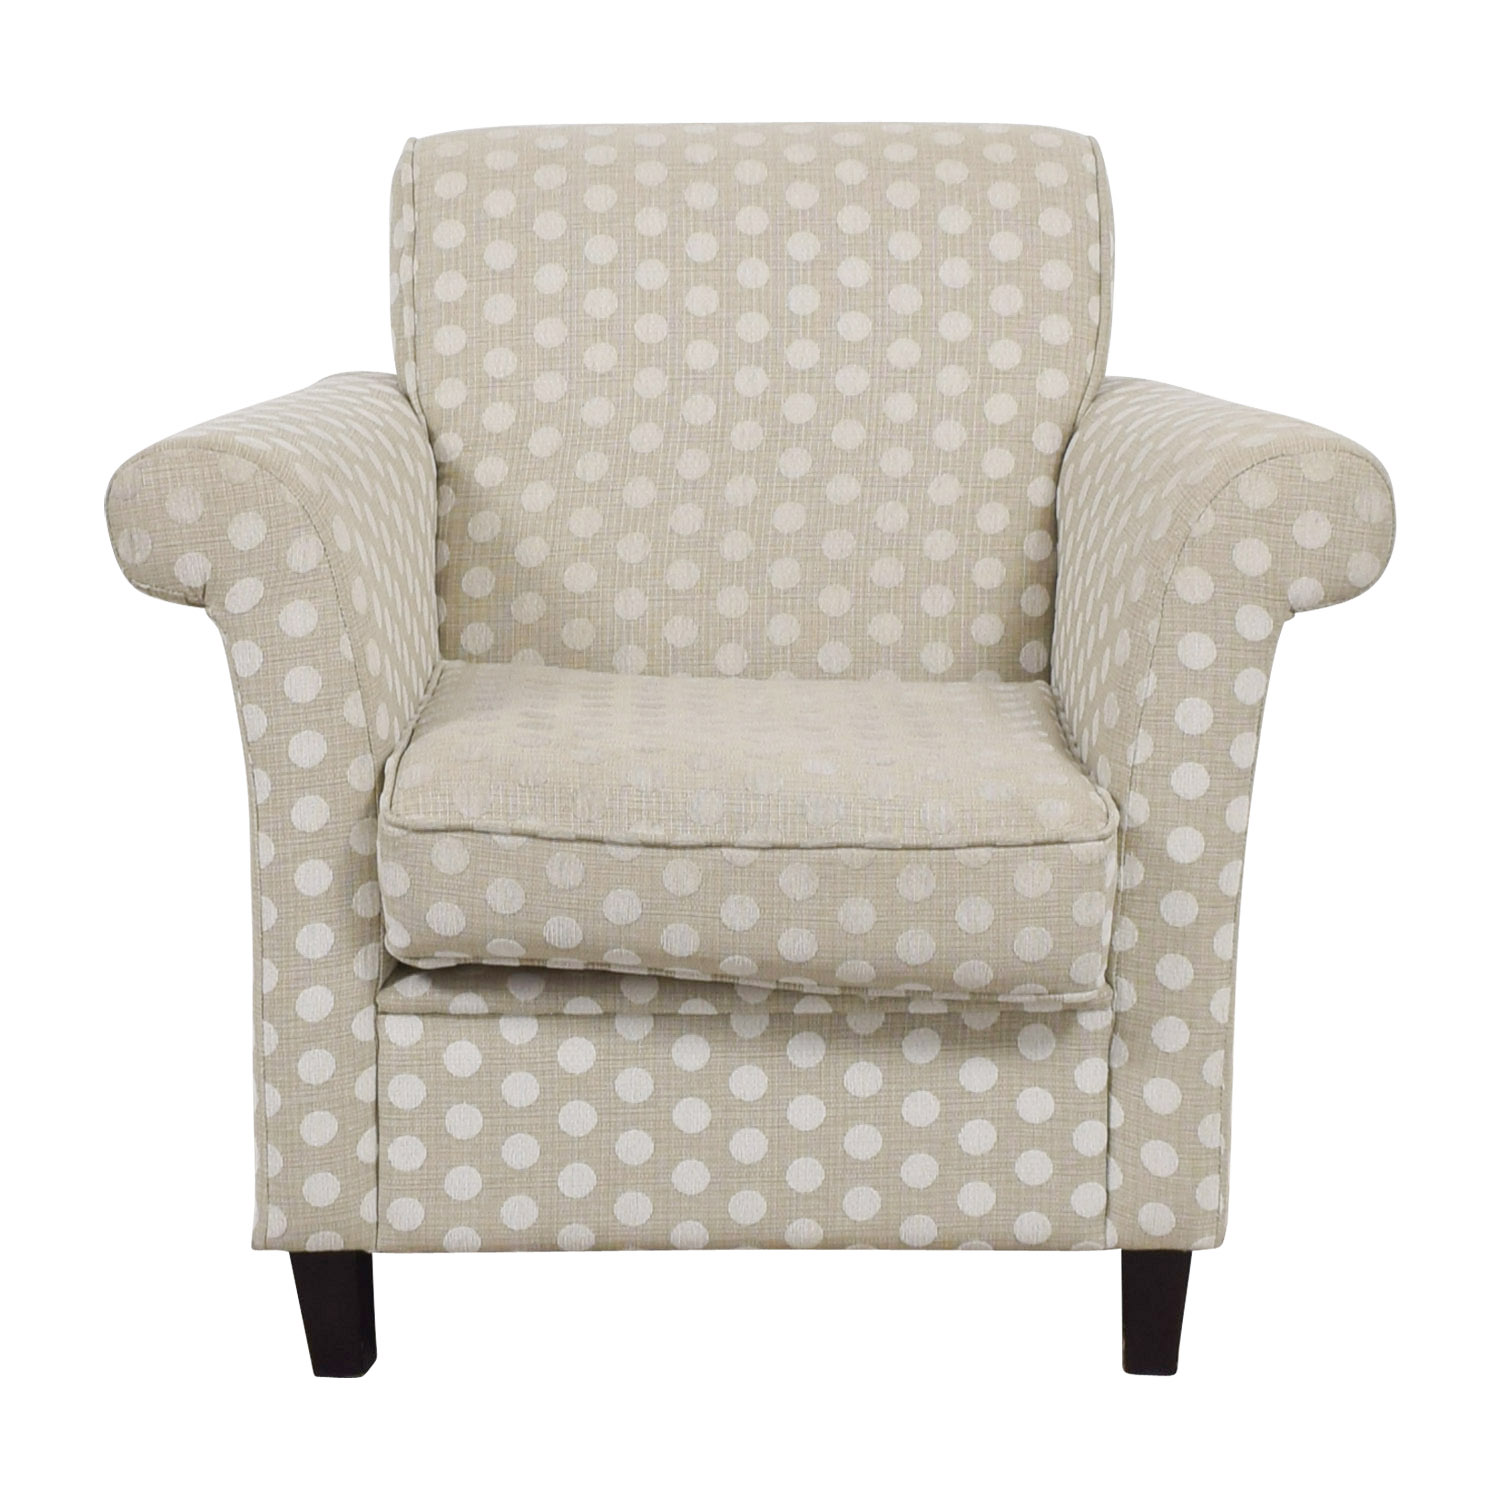 Adventures in Furniture Adventures in Furniture Polka Dot Arm Chair used